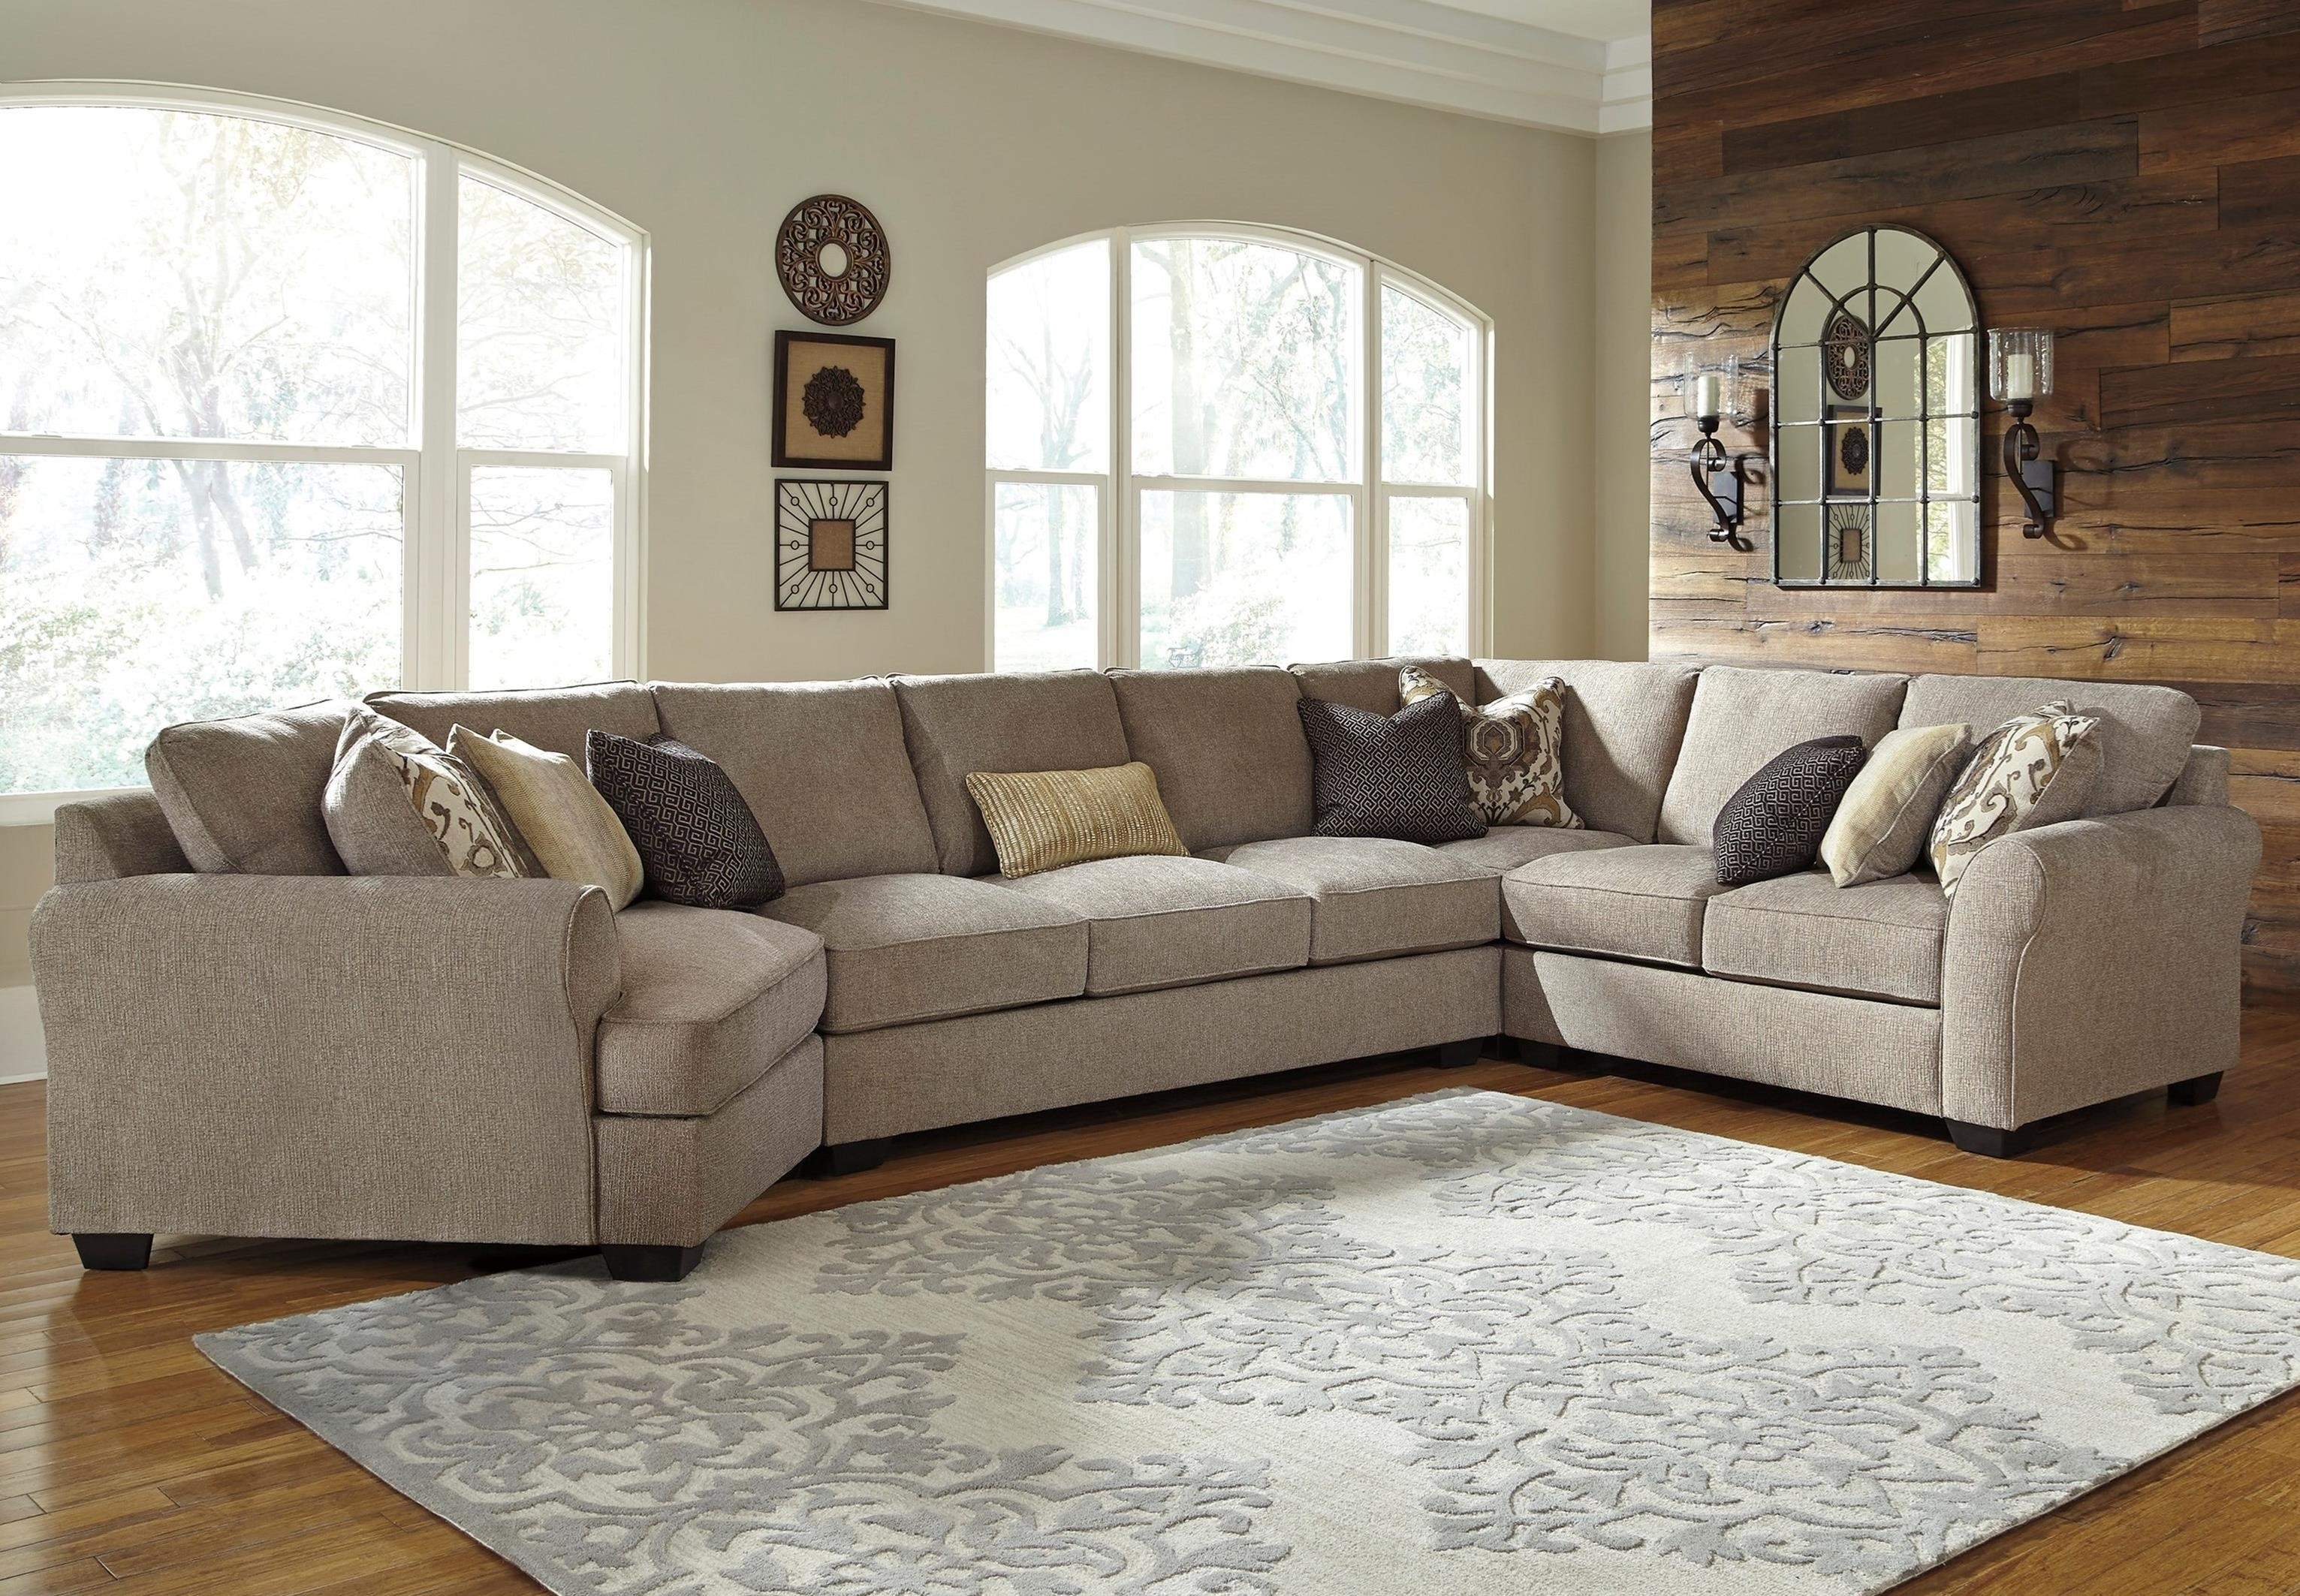 Sofa : Down Sectional Sofa Couch With Right Side Chaise L Sofas With Regard To Down Sectional Sofas (Image 9 of 10)